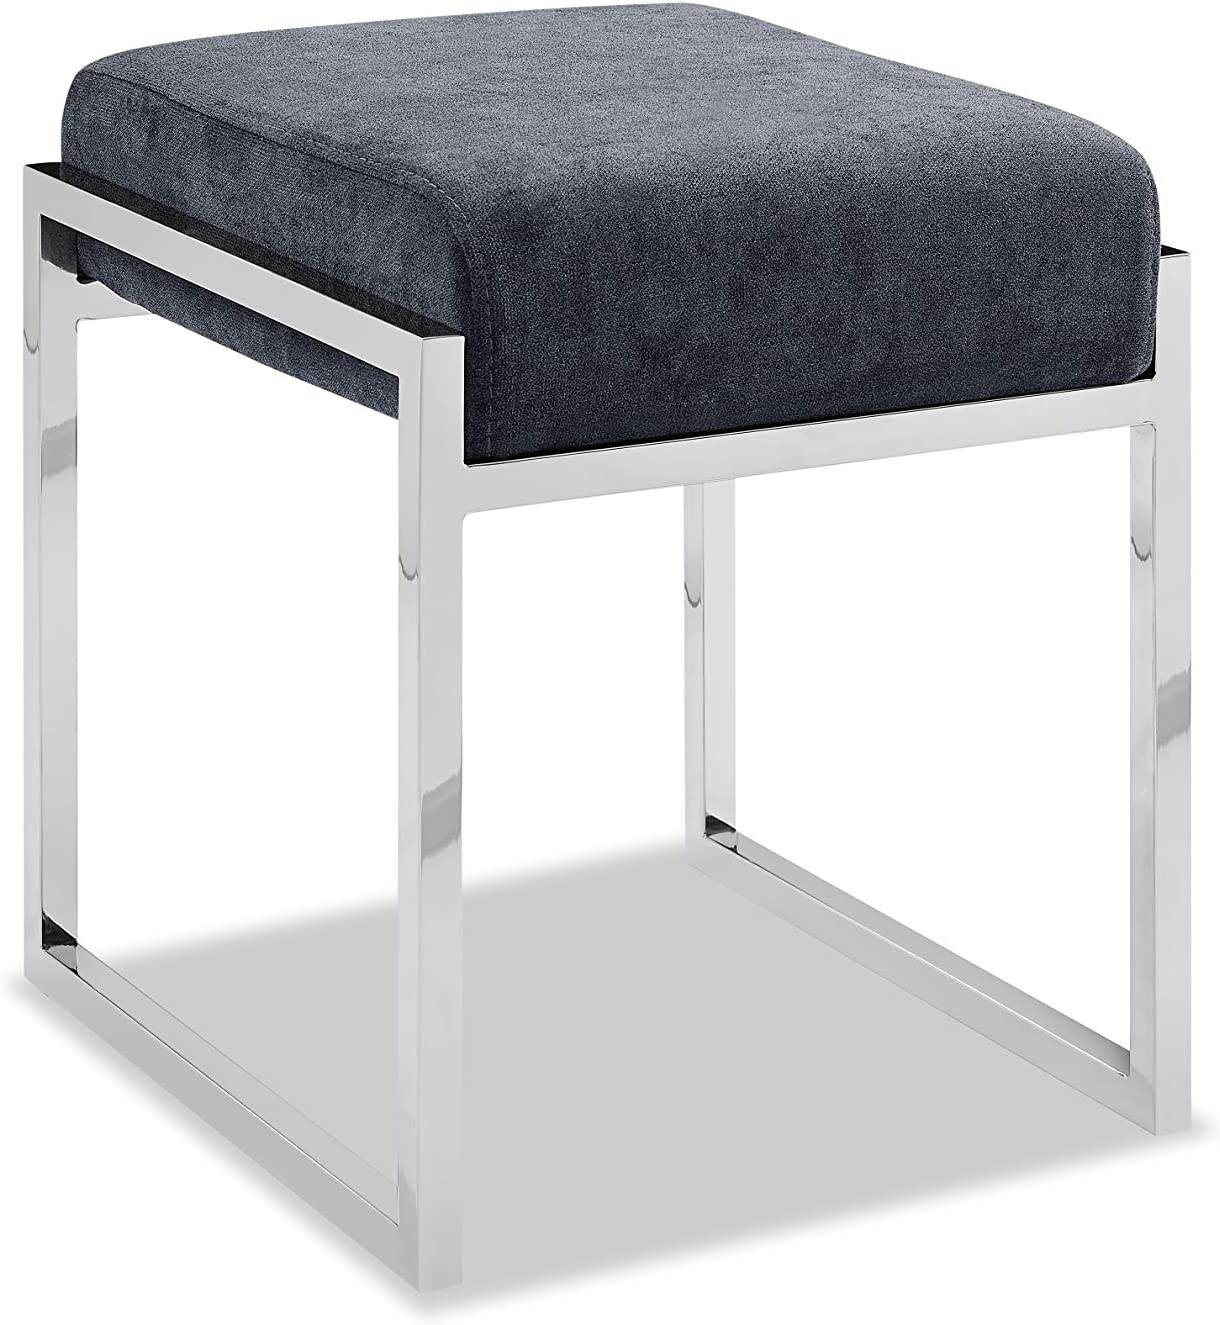 Whiteline Modern Living Milan Contemporary Ottoman in Light Gray, Charcoal Fabric or White Faux Leather and Polished Stainless Steel Legs